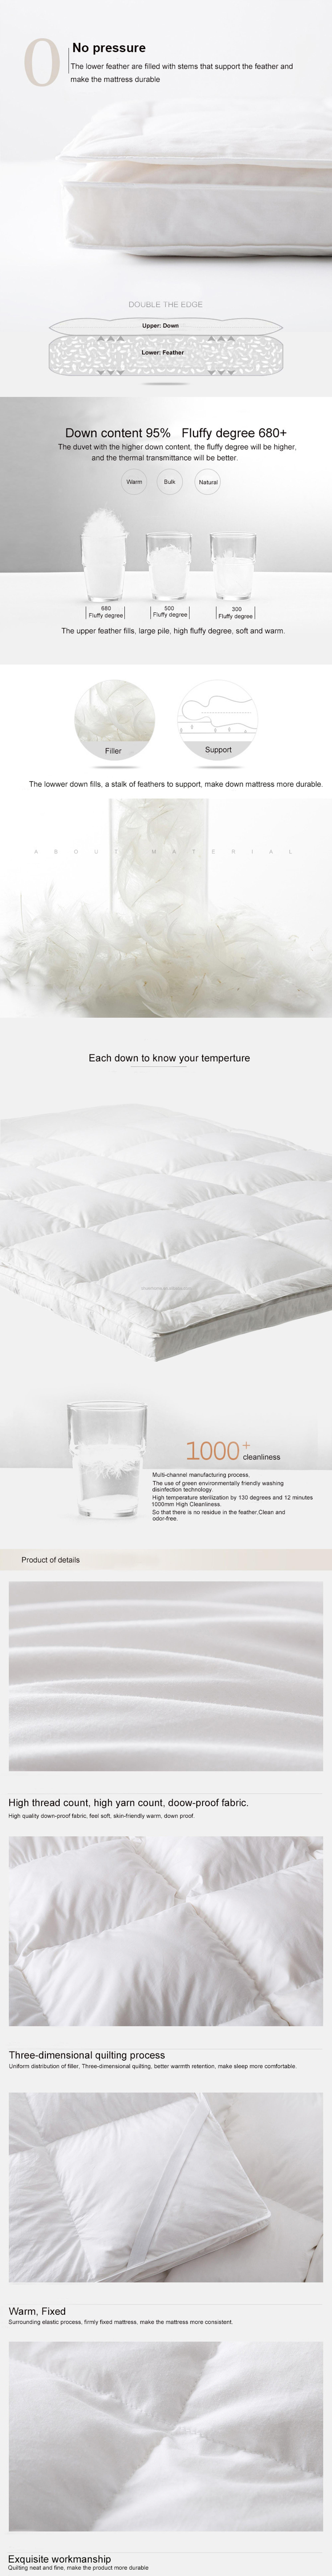 Top Quality Soft White Hotel Goose Duck Feather Down Mattress Protector